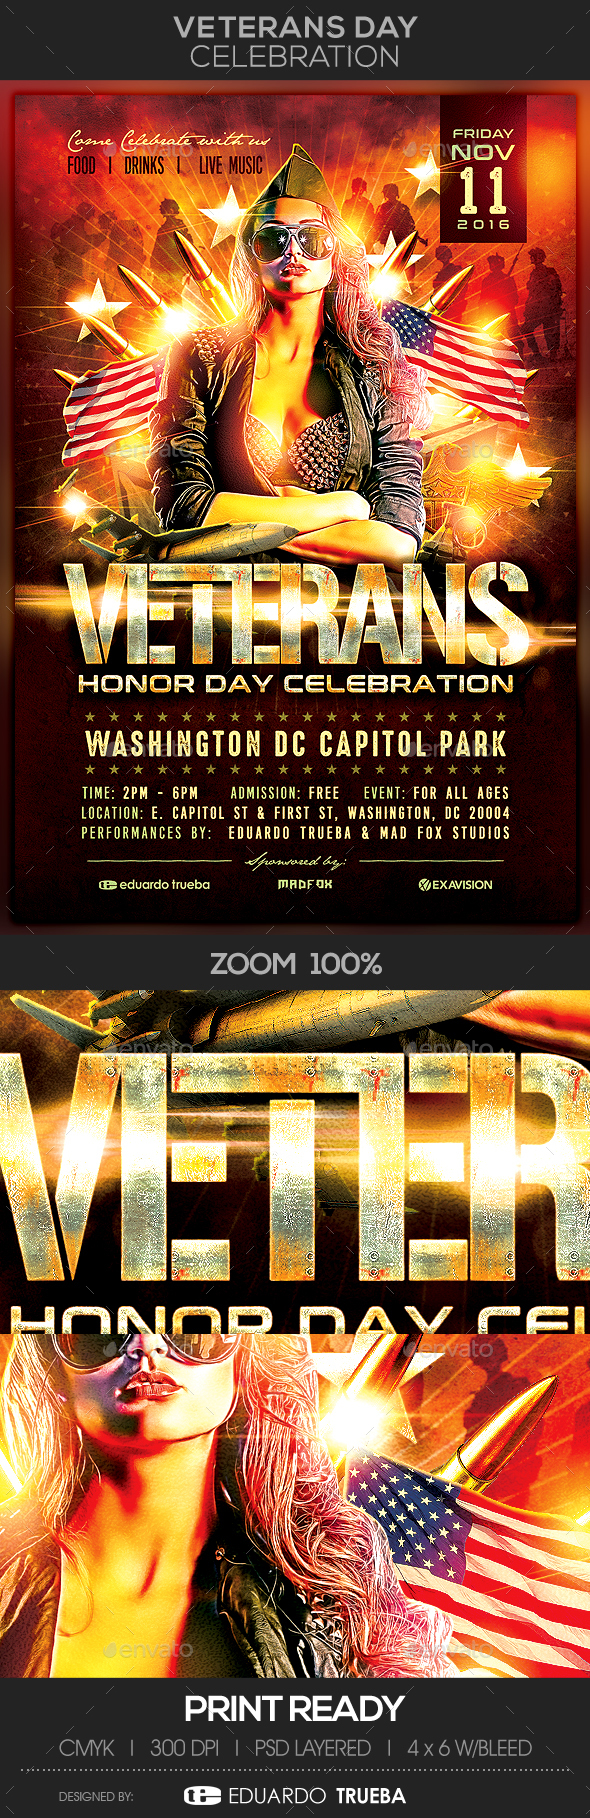 Veterans Day Celebration Flyer - Events Flyers